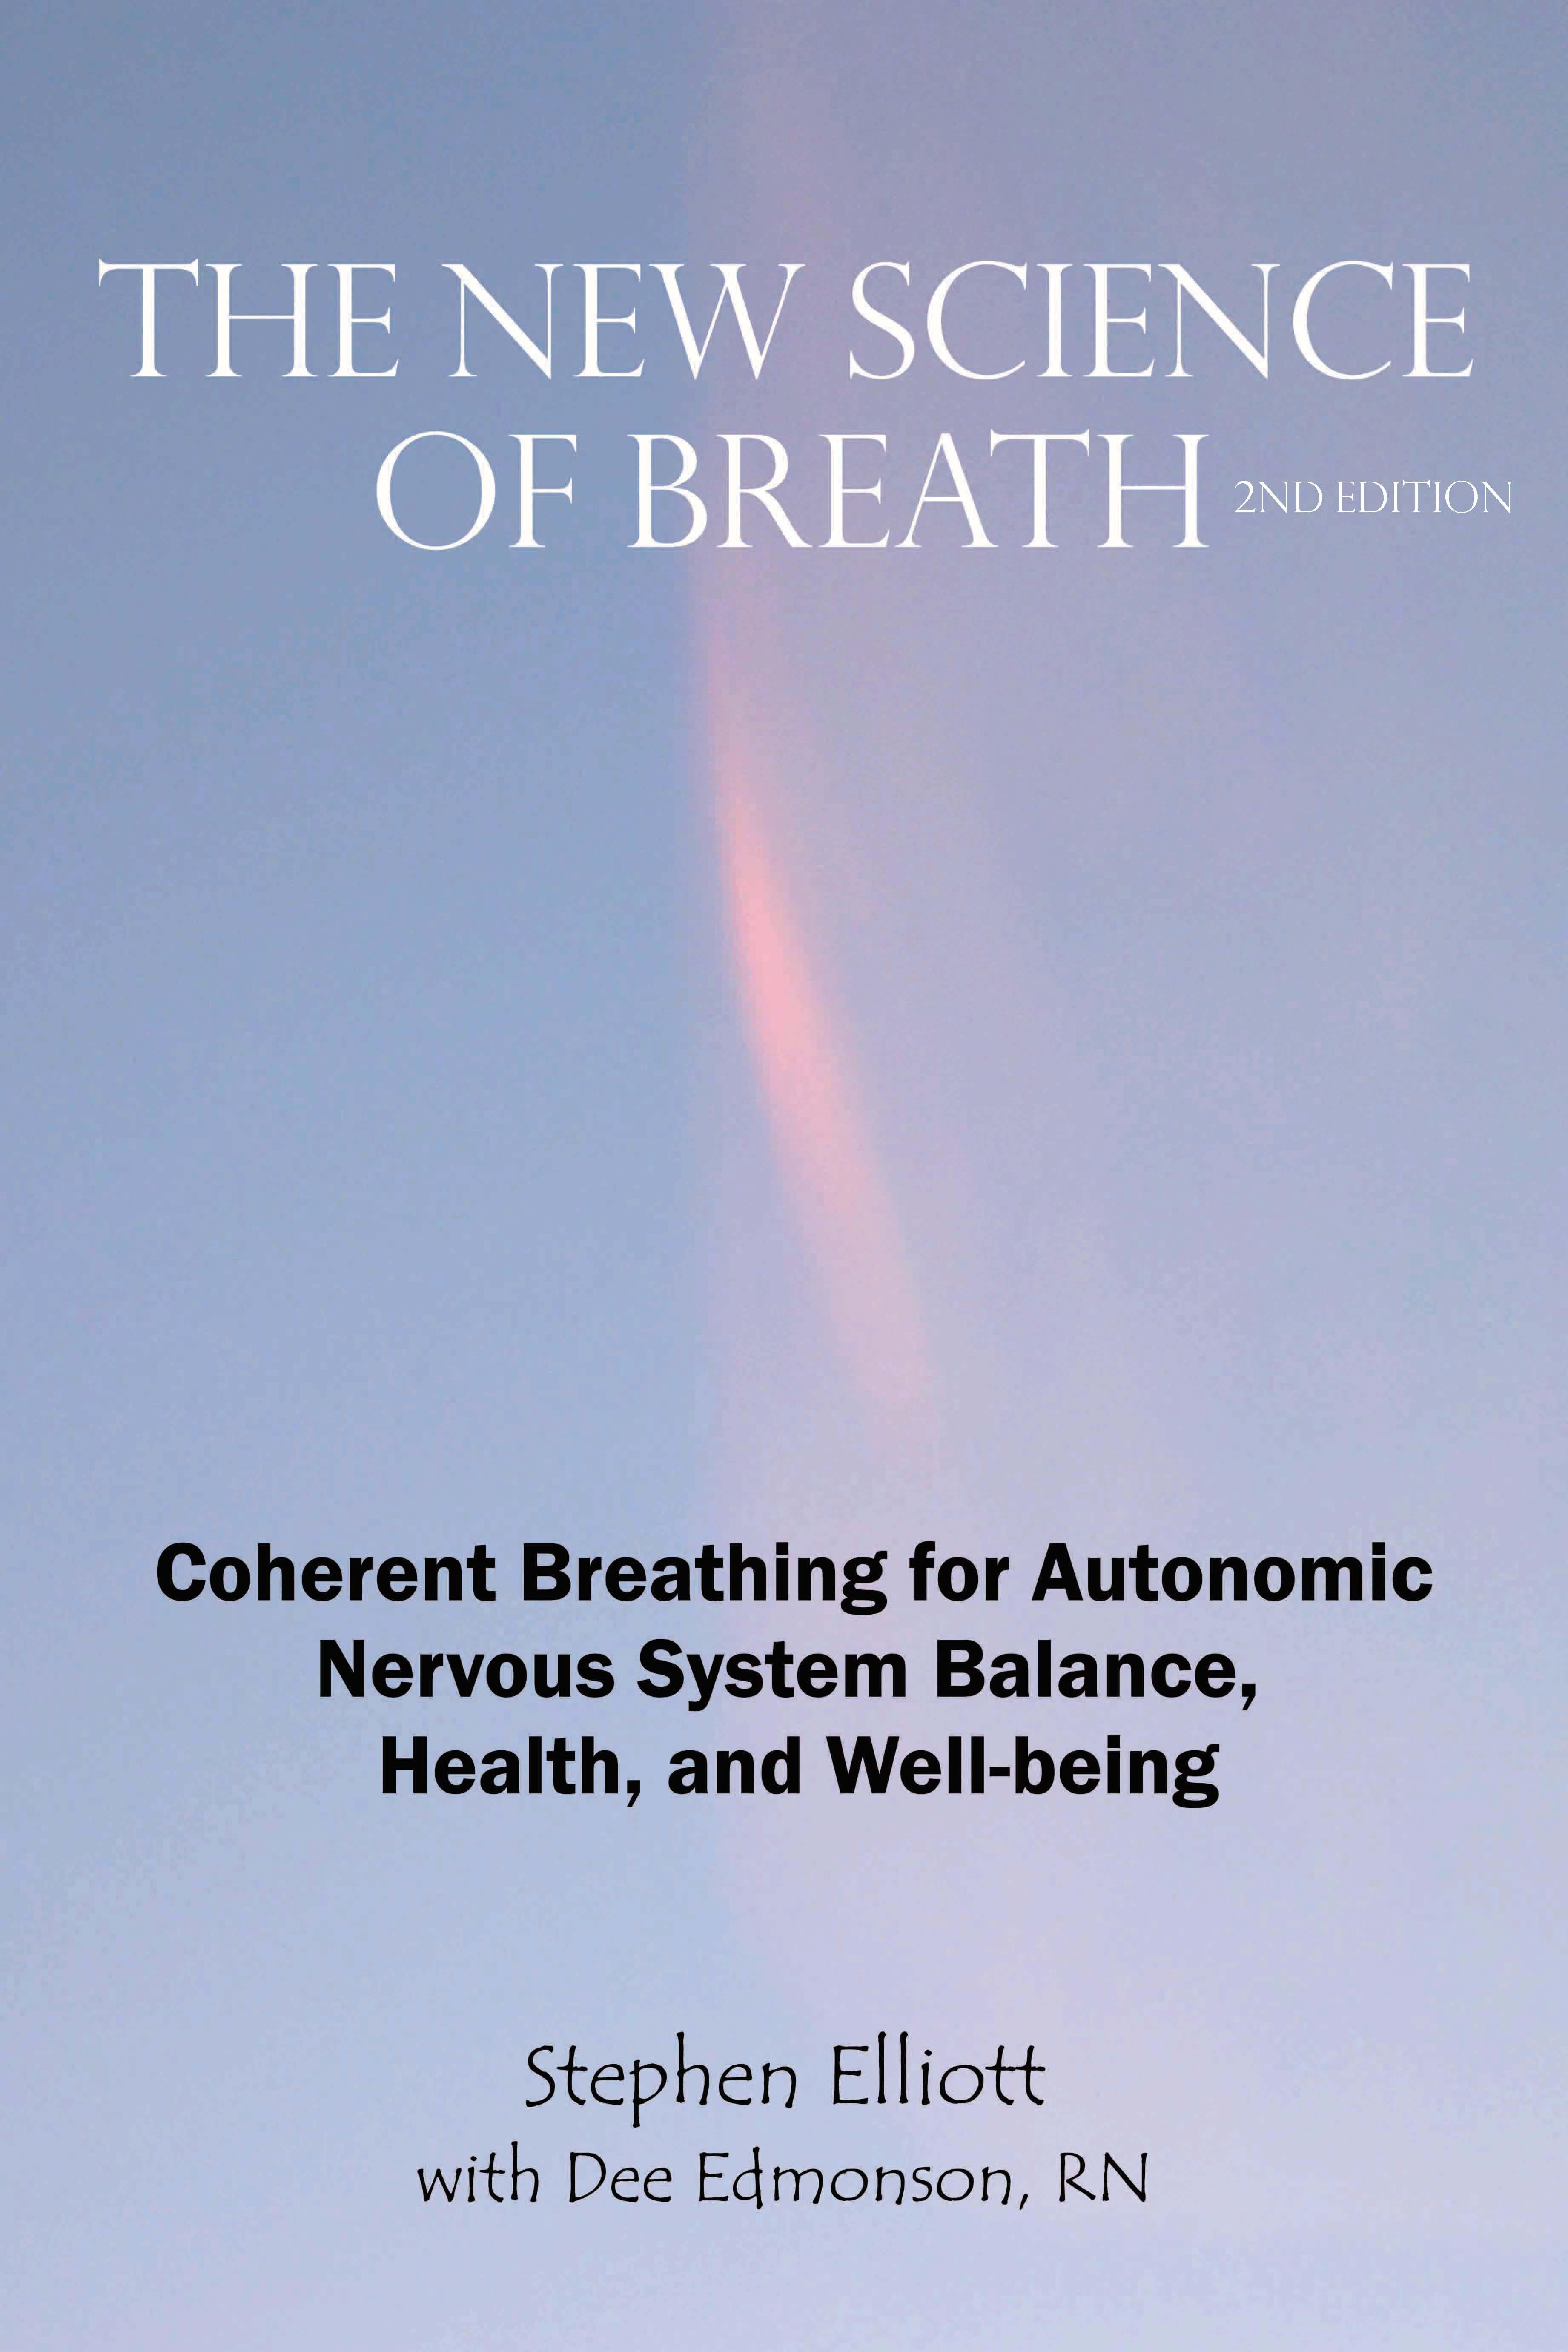 The New Science of Breath - 2nd Edition EB9785551532705